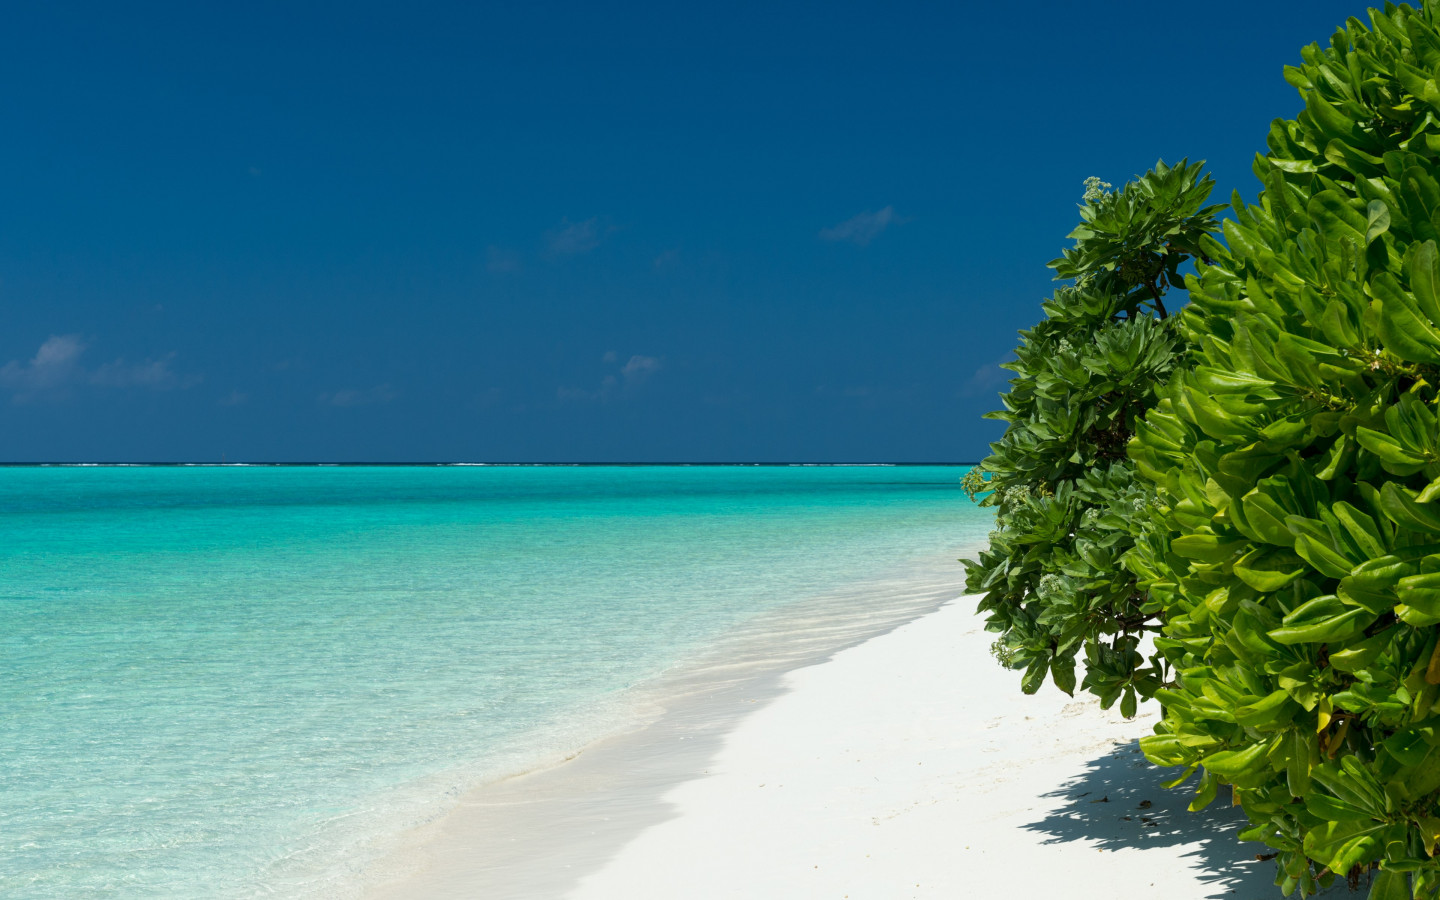 Turquoise waters of Maldives wallpaper 1440x900